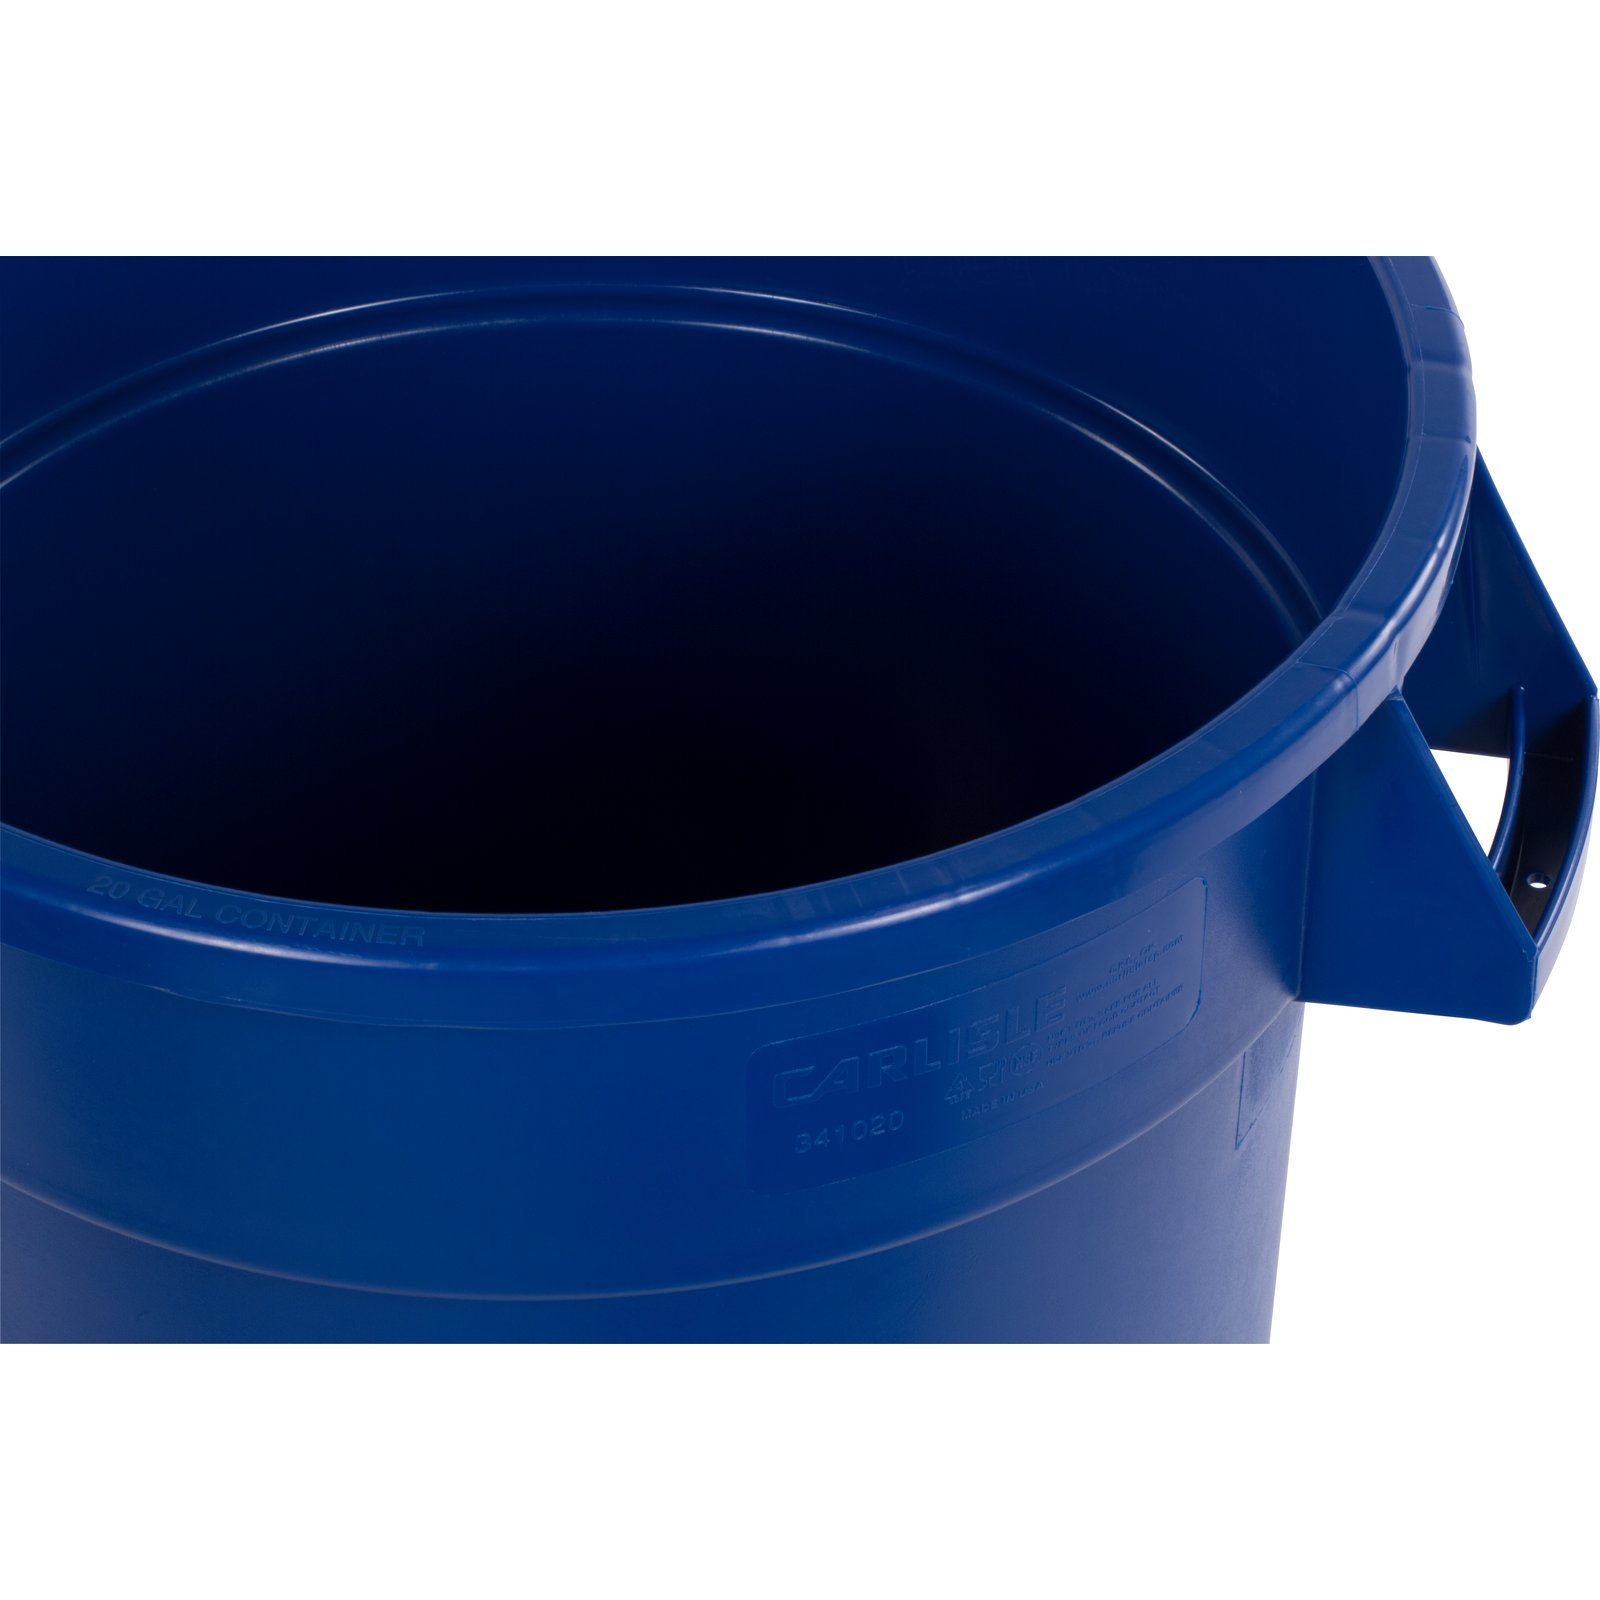 20 gallon bucket. 341020REC14 - Bronco™ Round RECYCLE Container 20 Gallon Blue Bucket